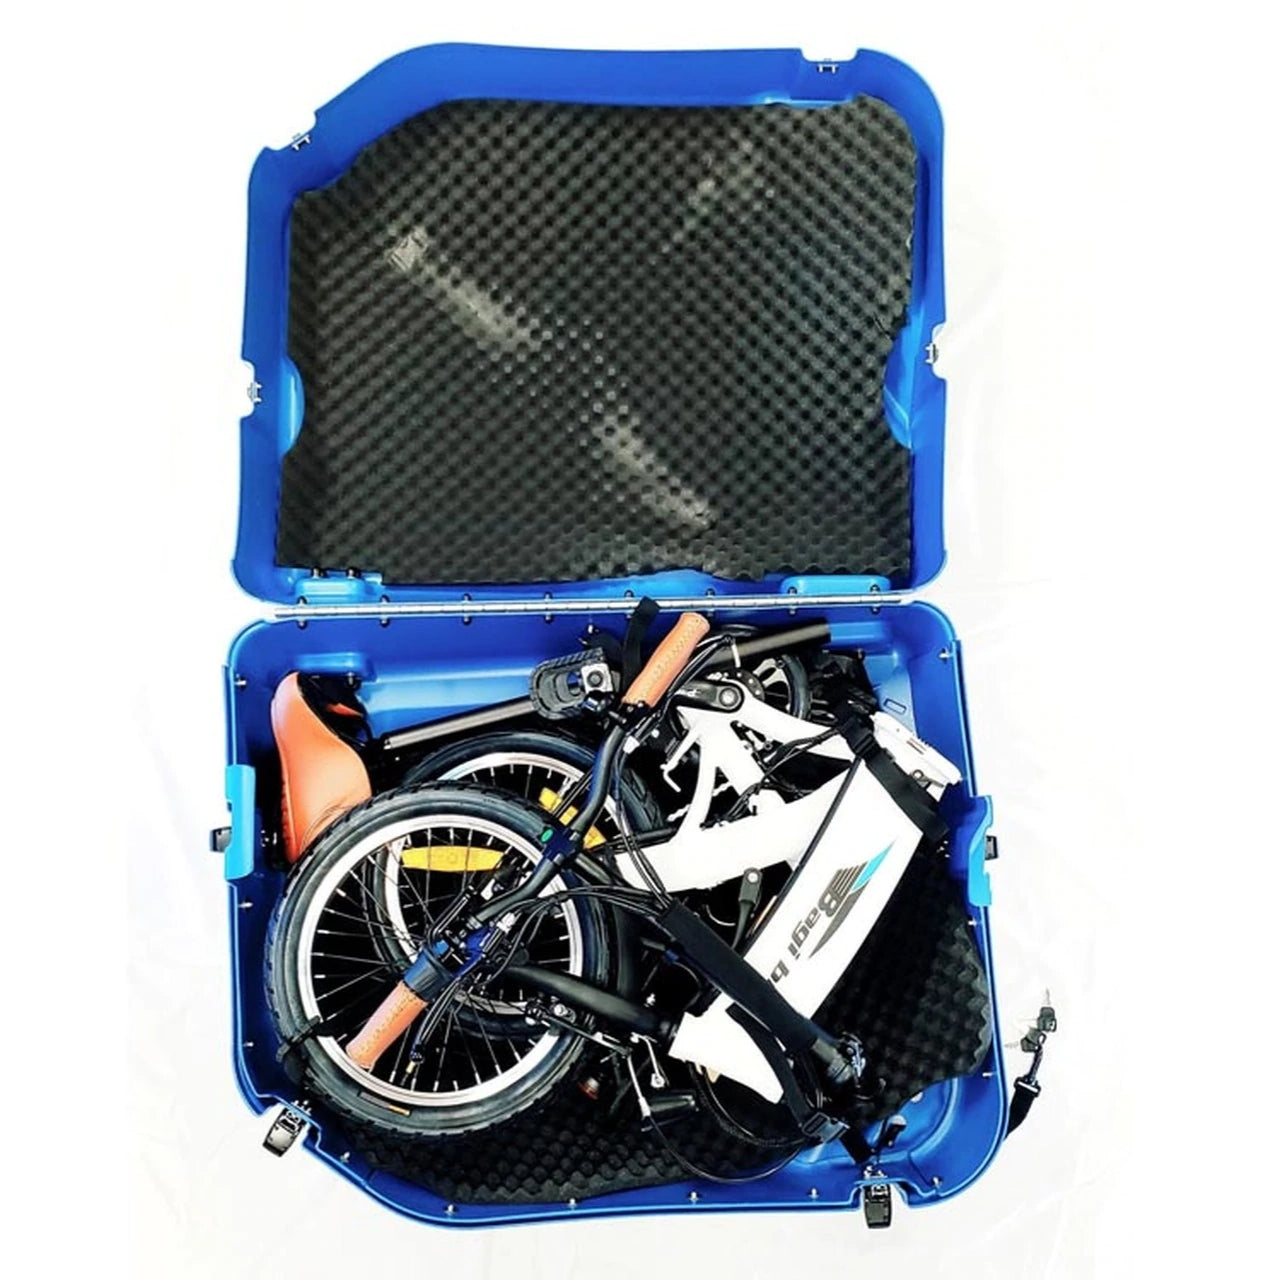 BAGIBIKE B16 HARD SHELL FOLDING BIKE CASE